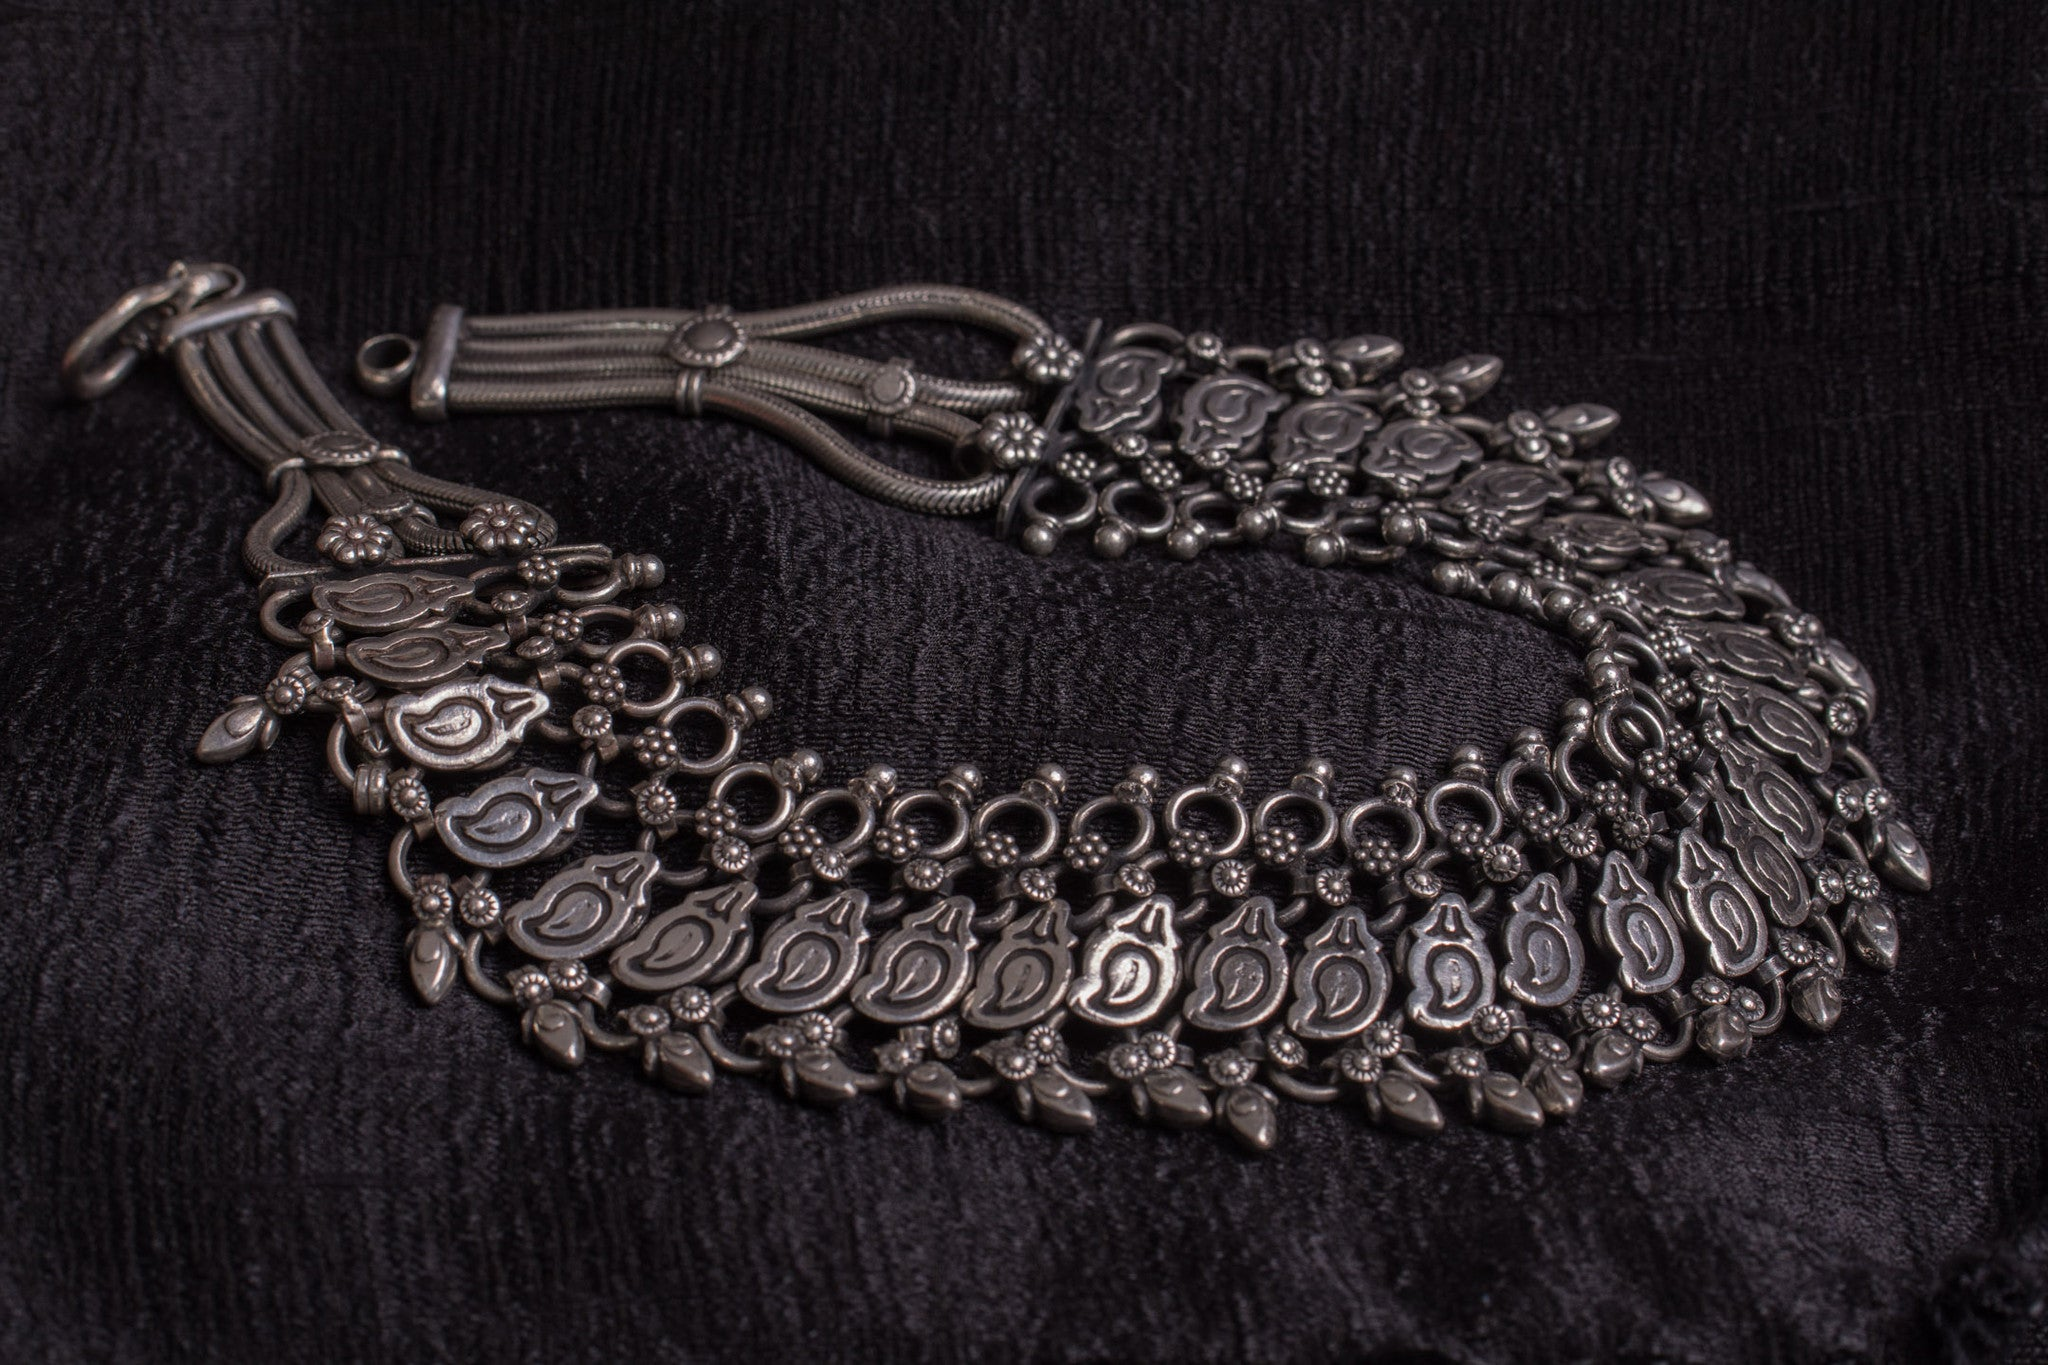 20a525-silver-amrapali-necklace-embossed-bead-work-geometric-shapes-floral